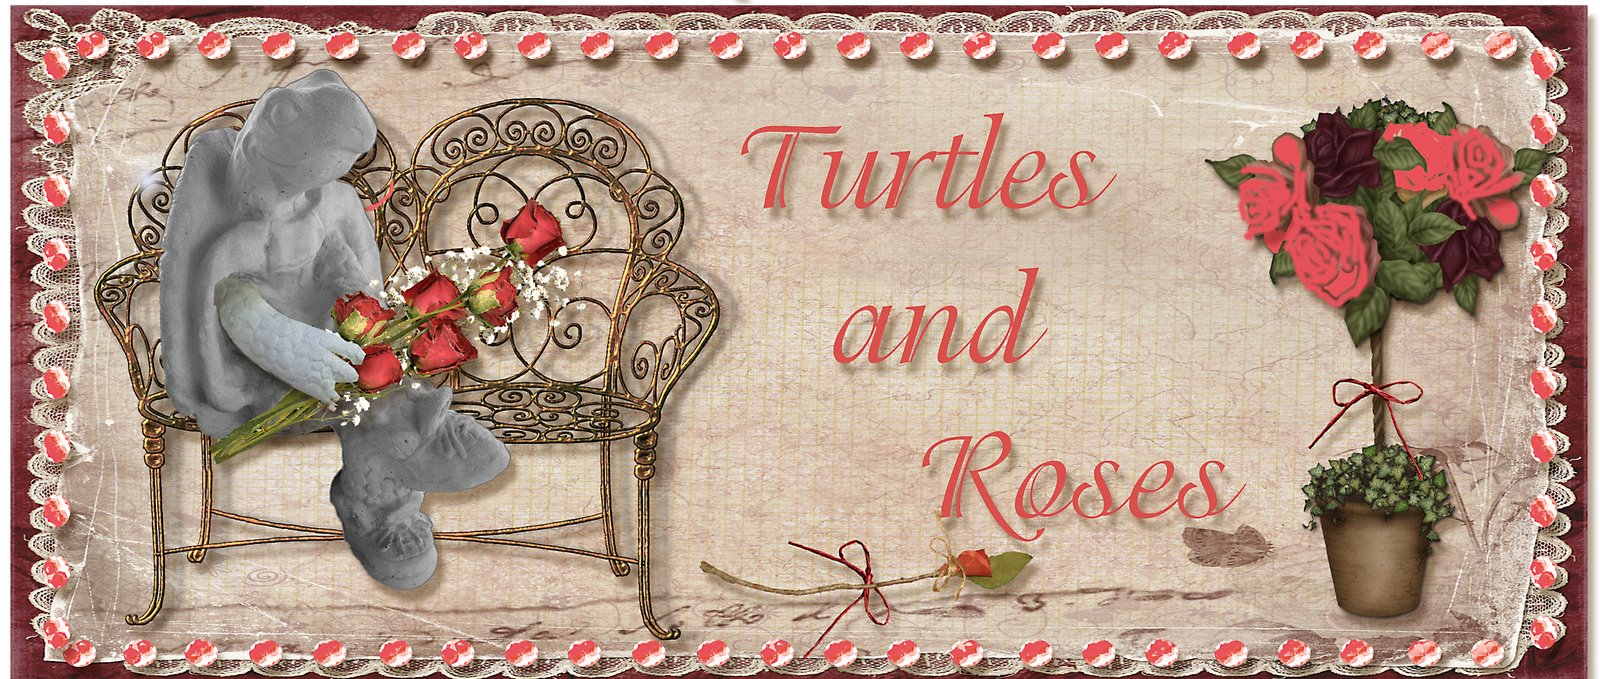 Turtles and Roses